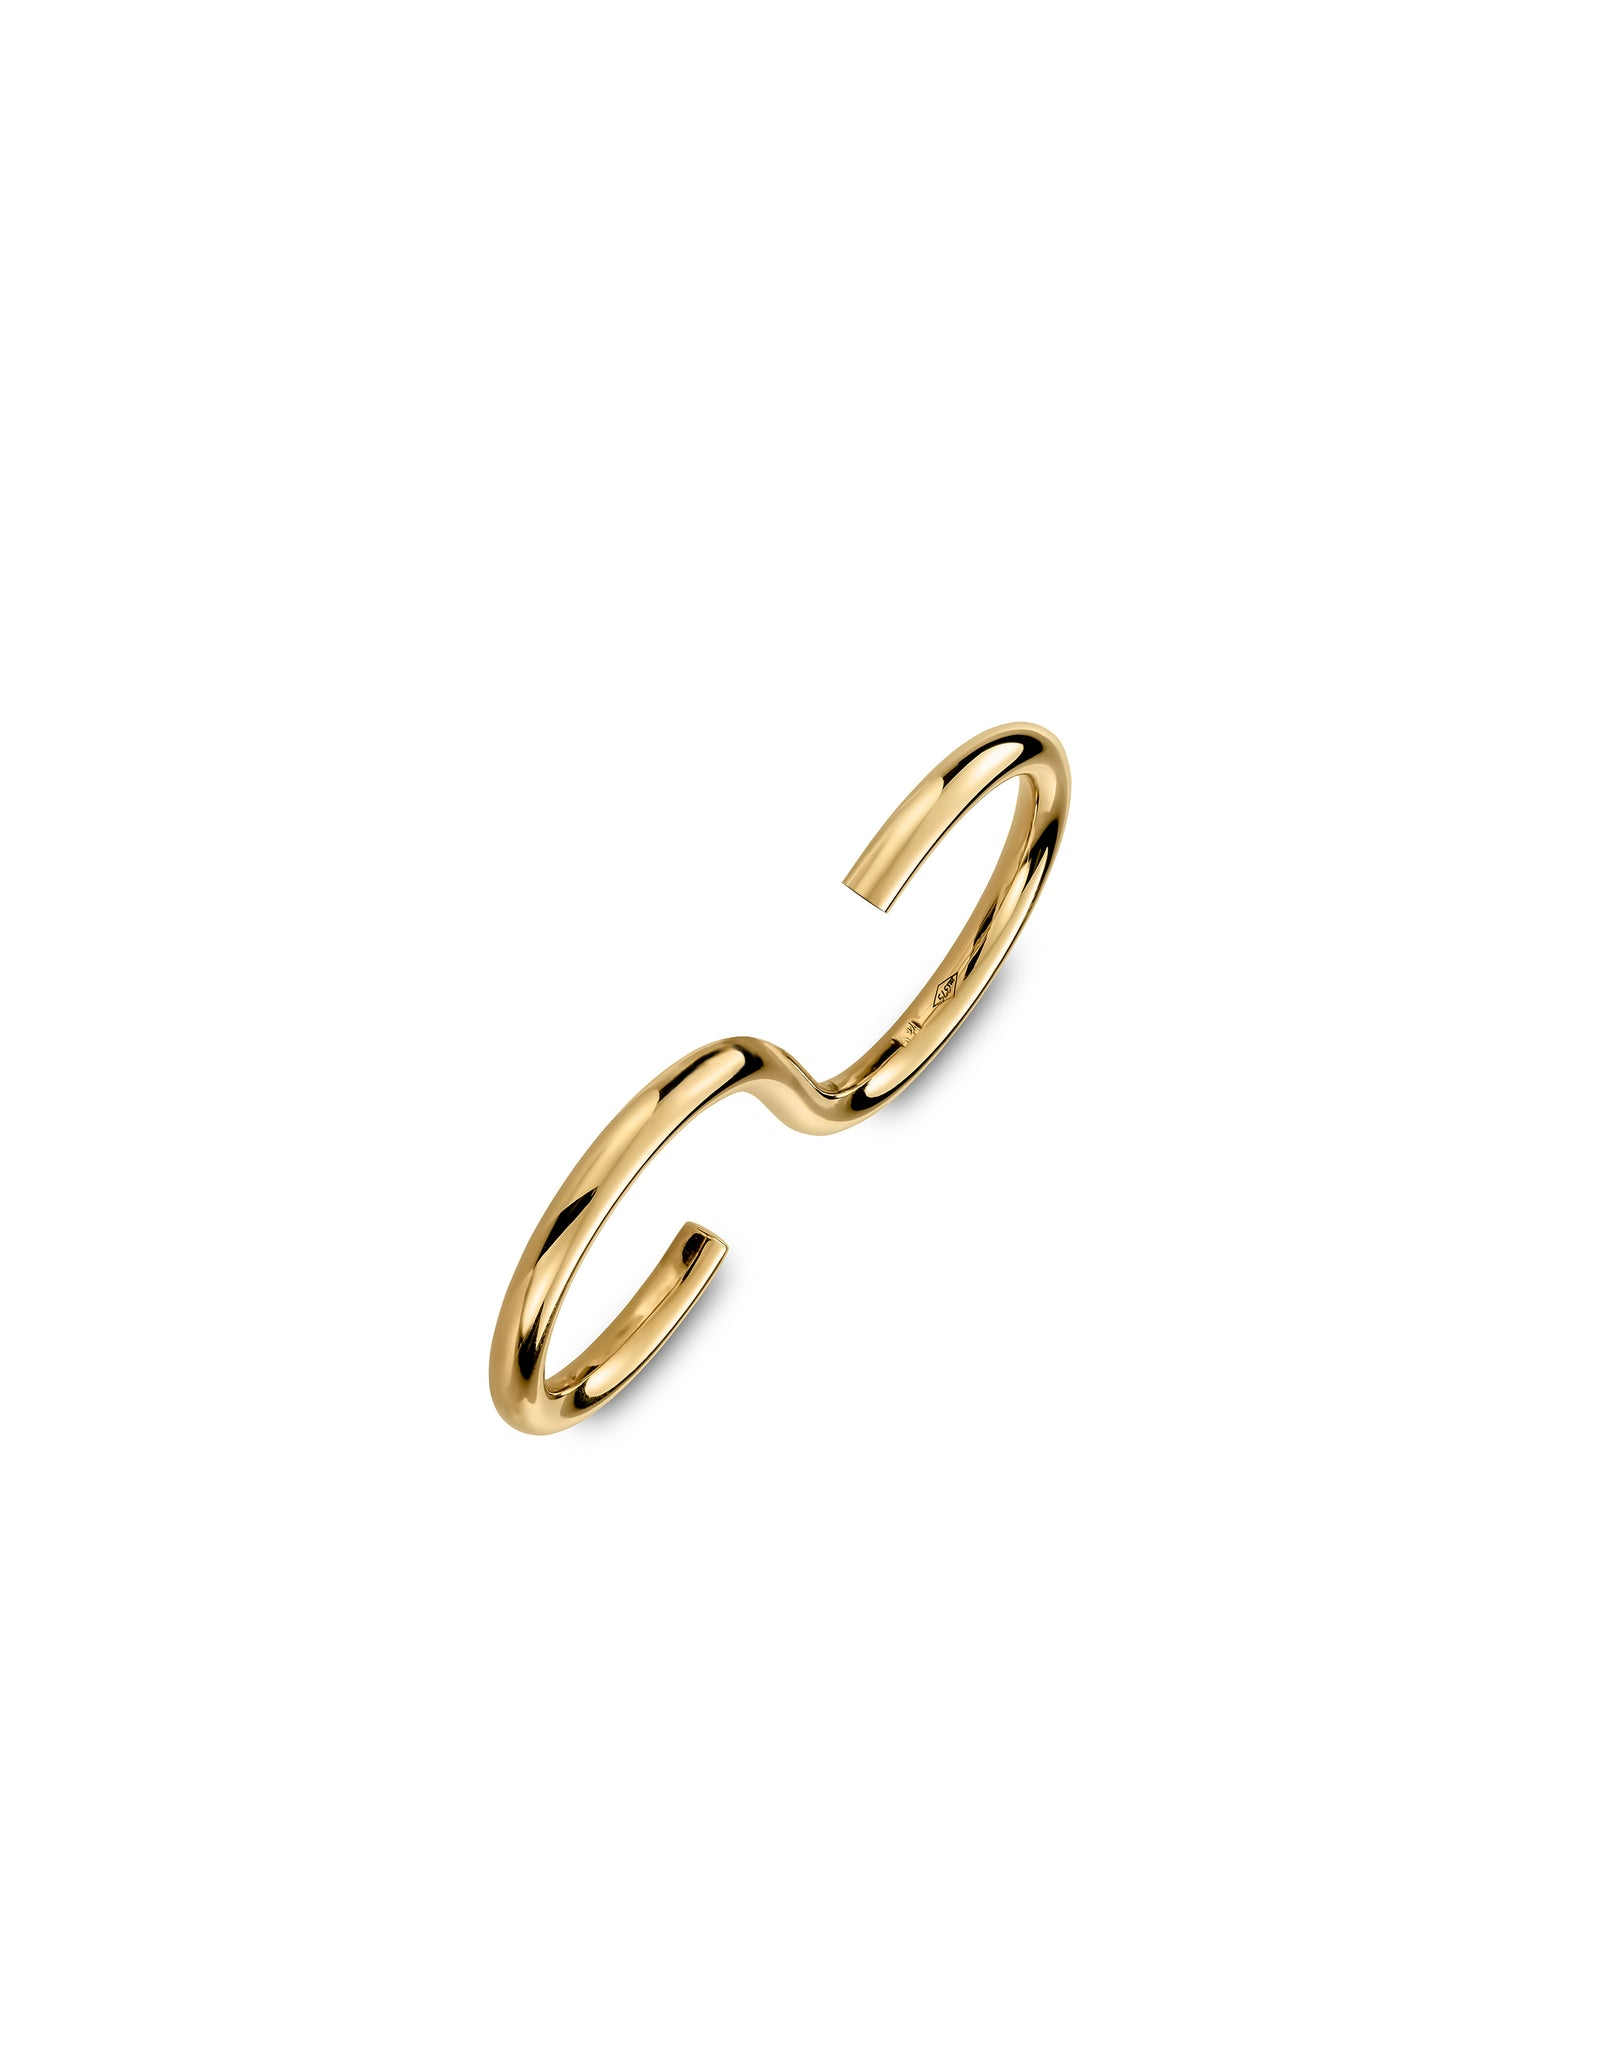 Double ring 9K gold - Signature ouble ring - Nayestones